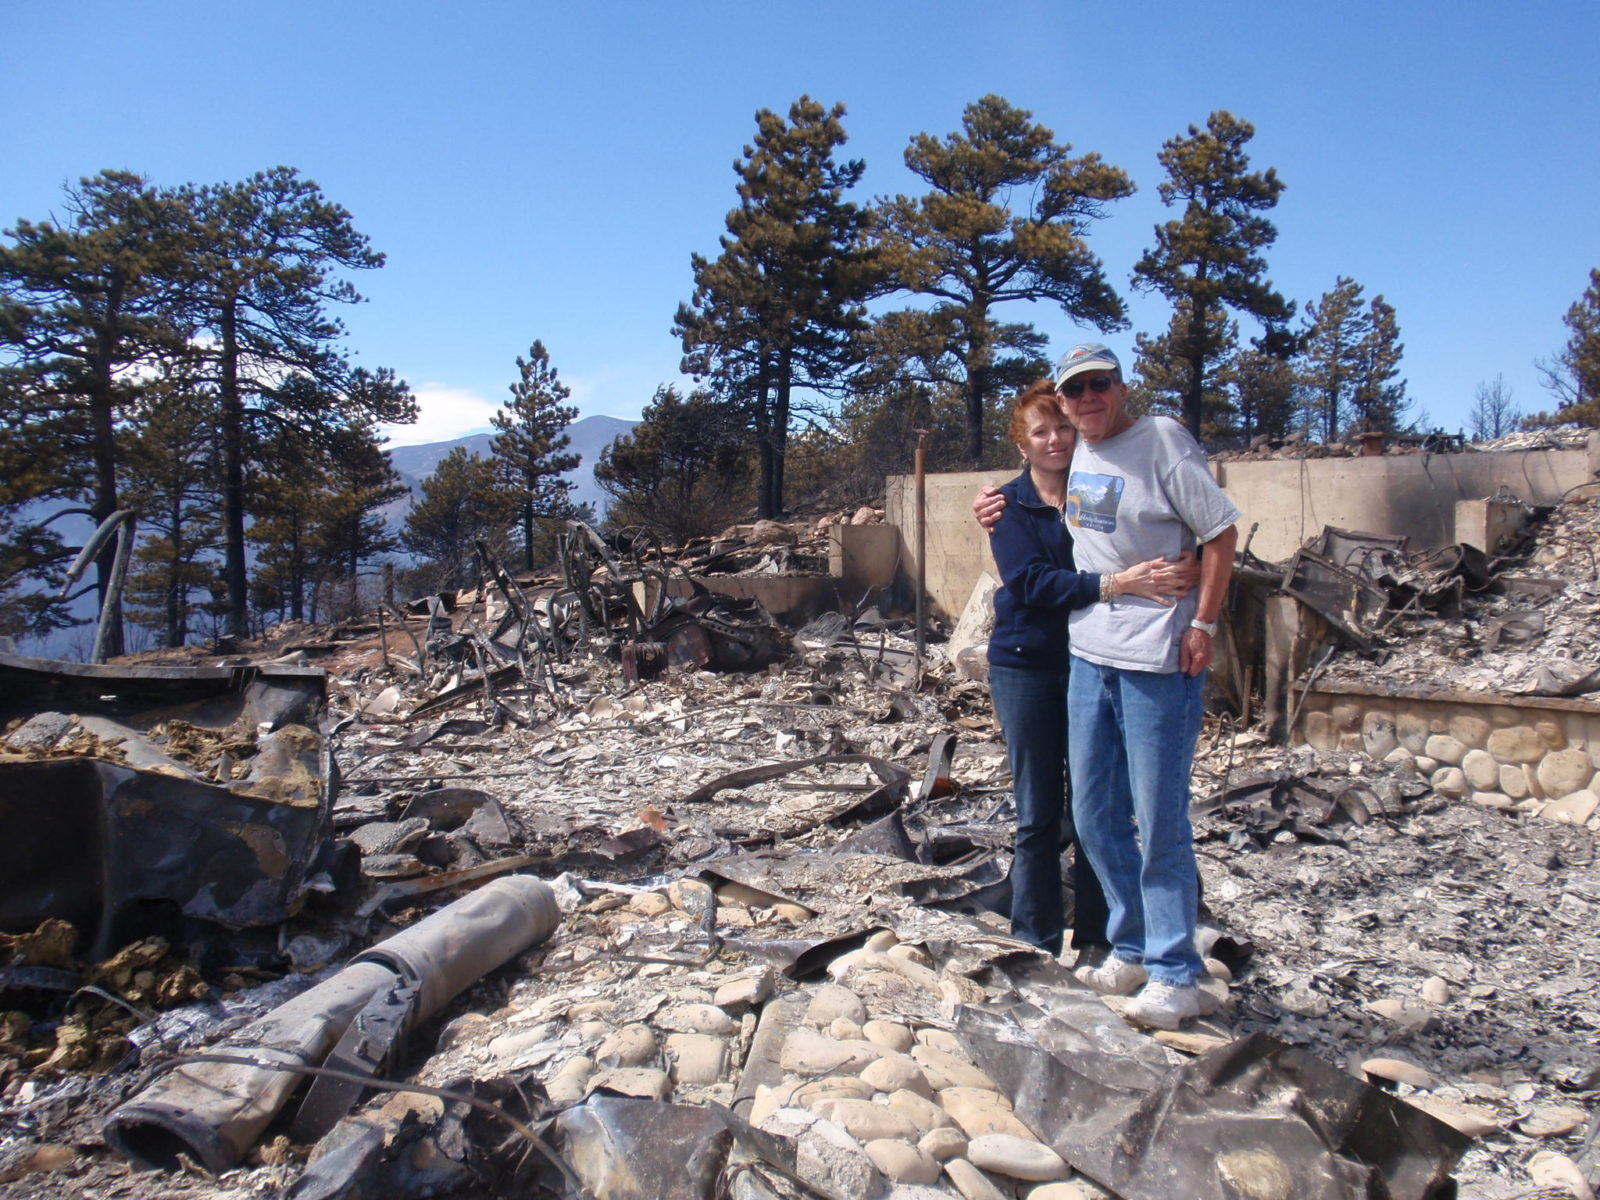 After the fire burned Linda Masterson's home